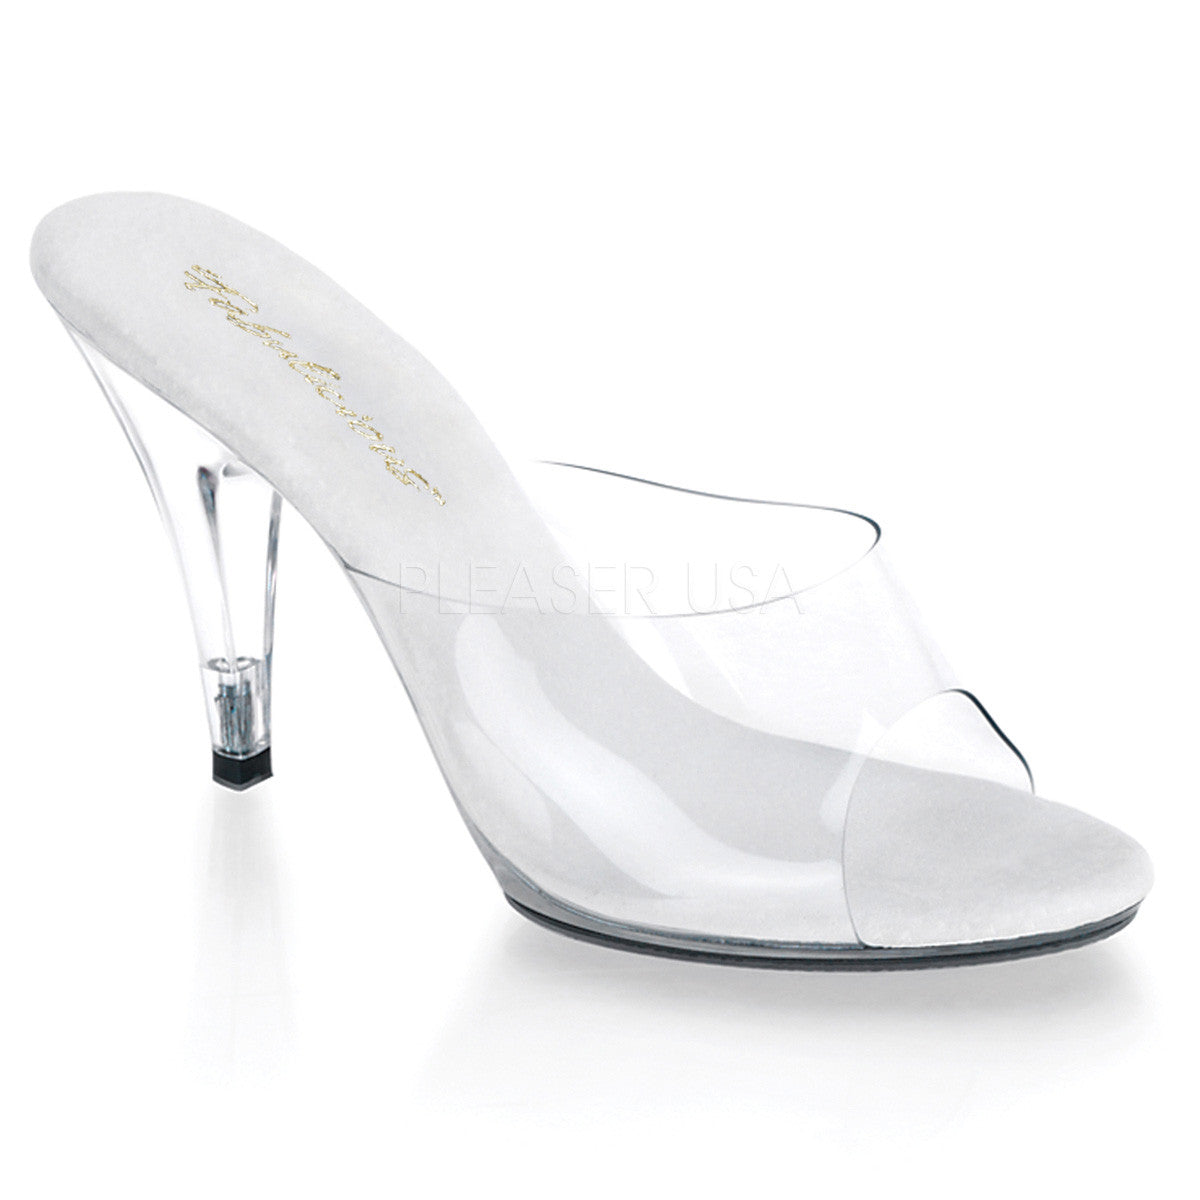 Fabulicious,FABULICIOUS CARESS-401 Clear-Clear Stiletto Slides - Shoecup.com